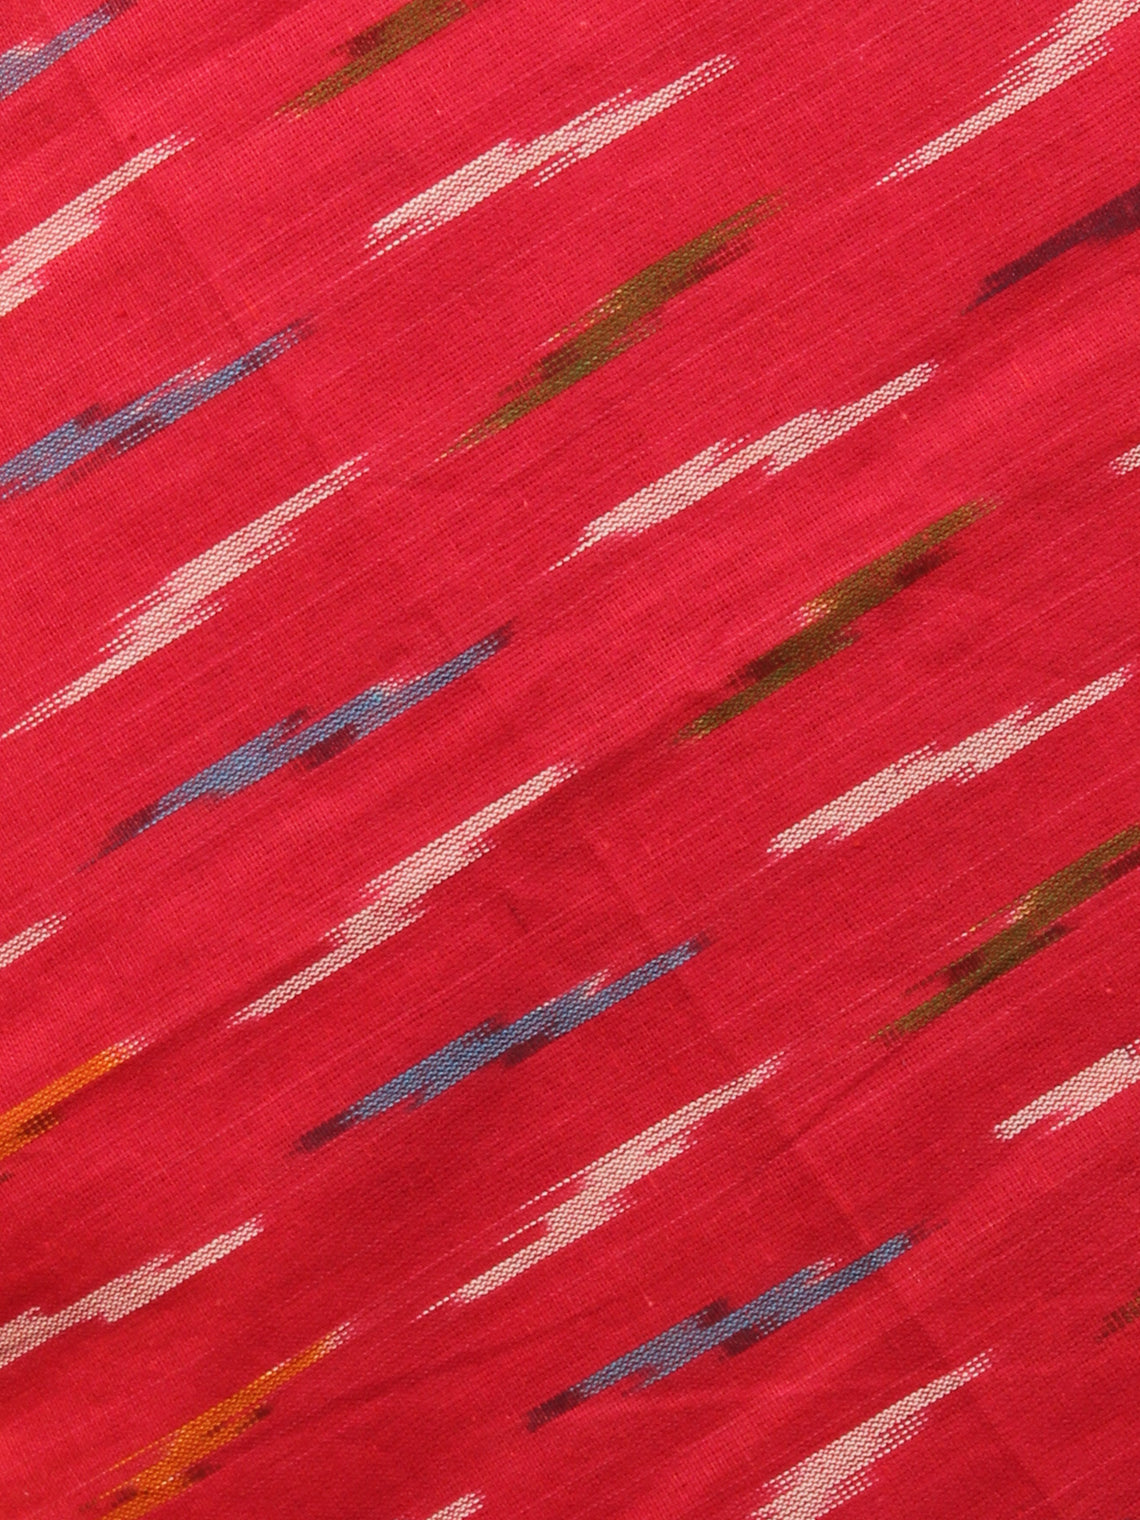 Red Yellow Off White Ikat Handwoven Cotton Suit Fabric Set of 3 - S1002010